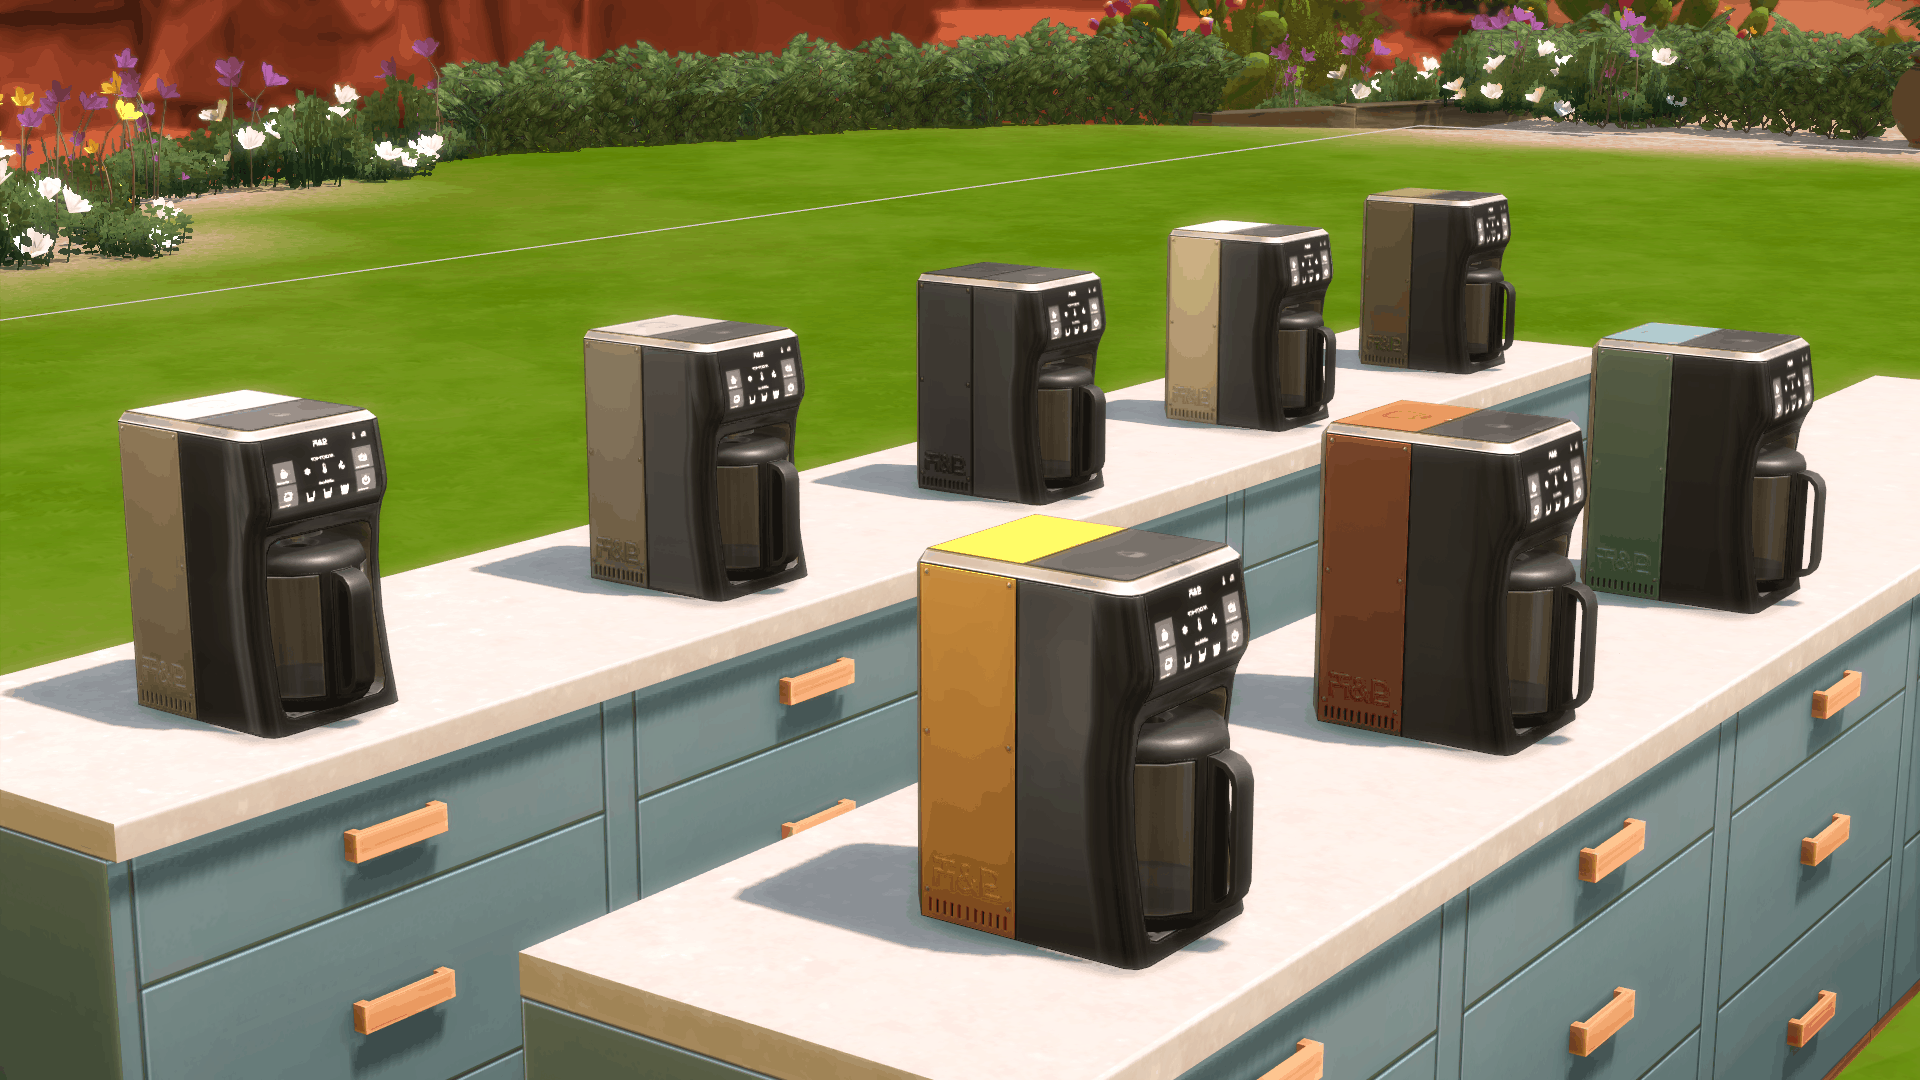 The Sims 4 Eco Kitchen Stuff Custom Stuff Pack Mod Sims 4 Mod Mod For Sims 4